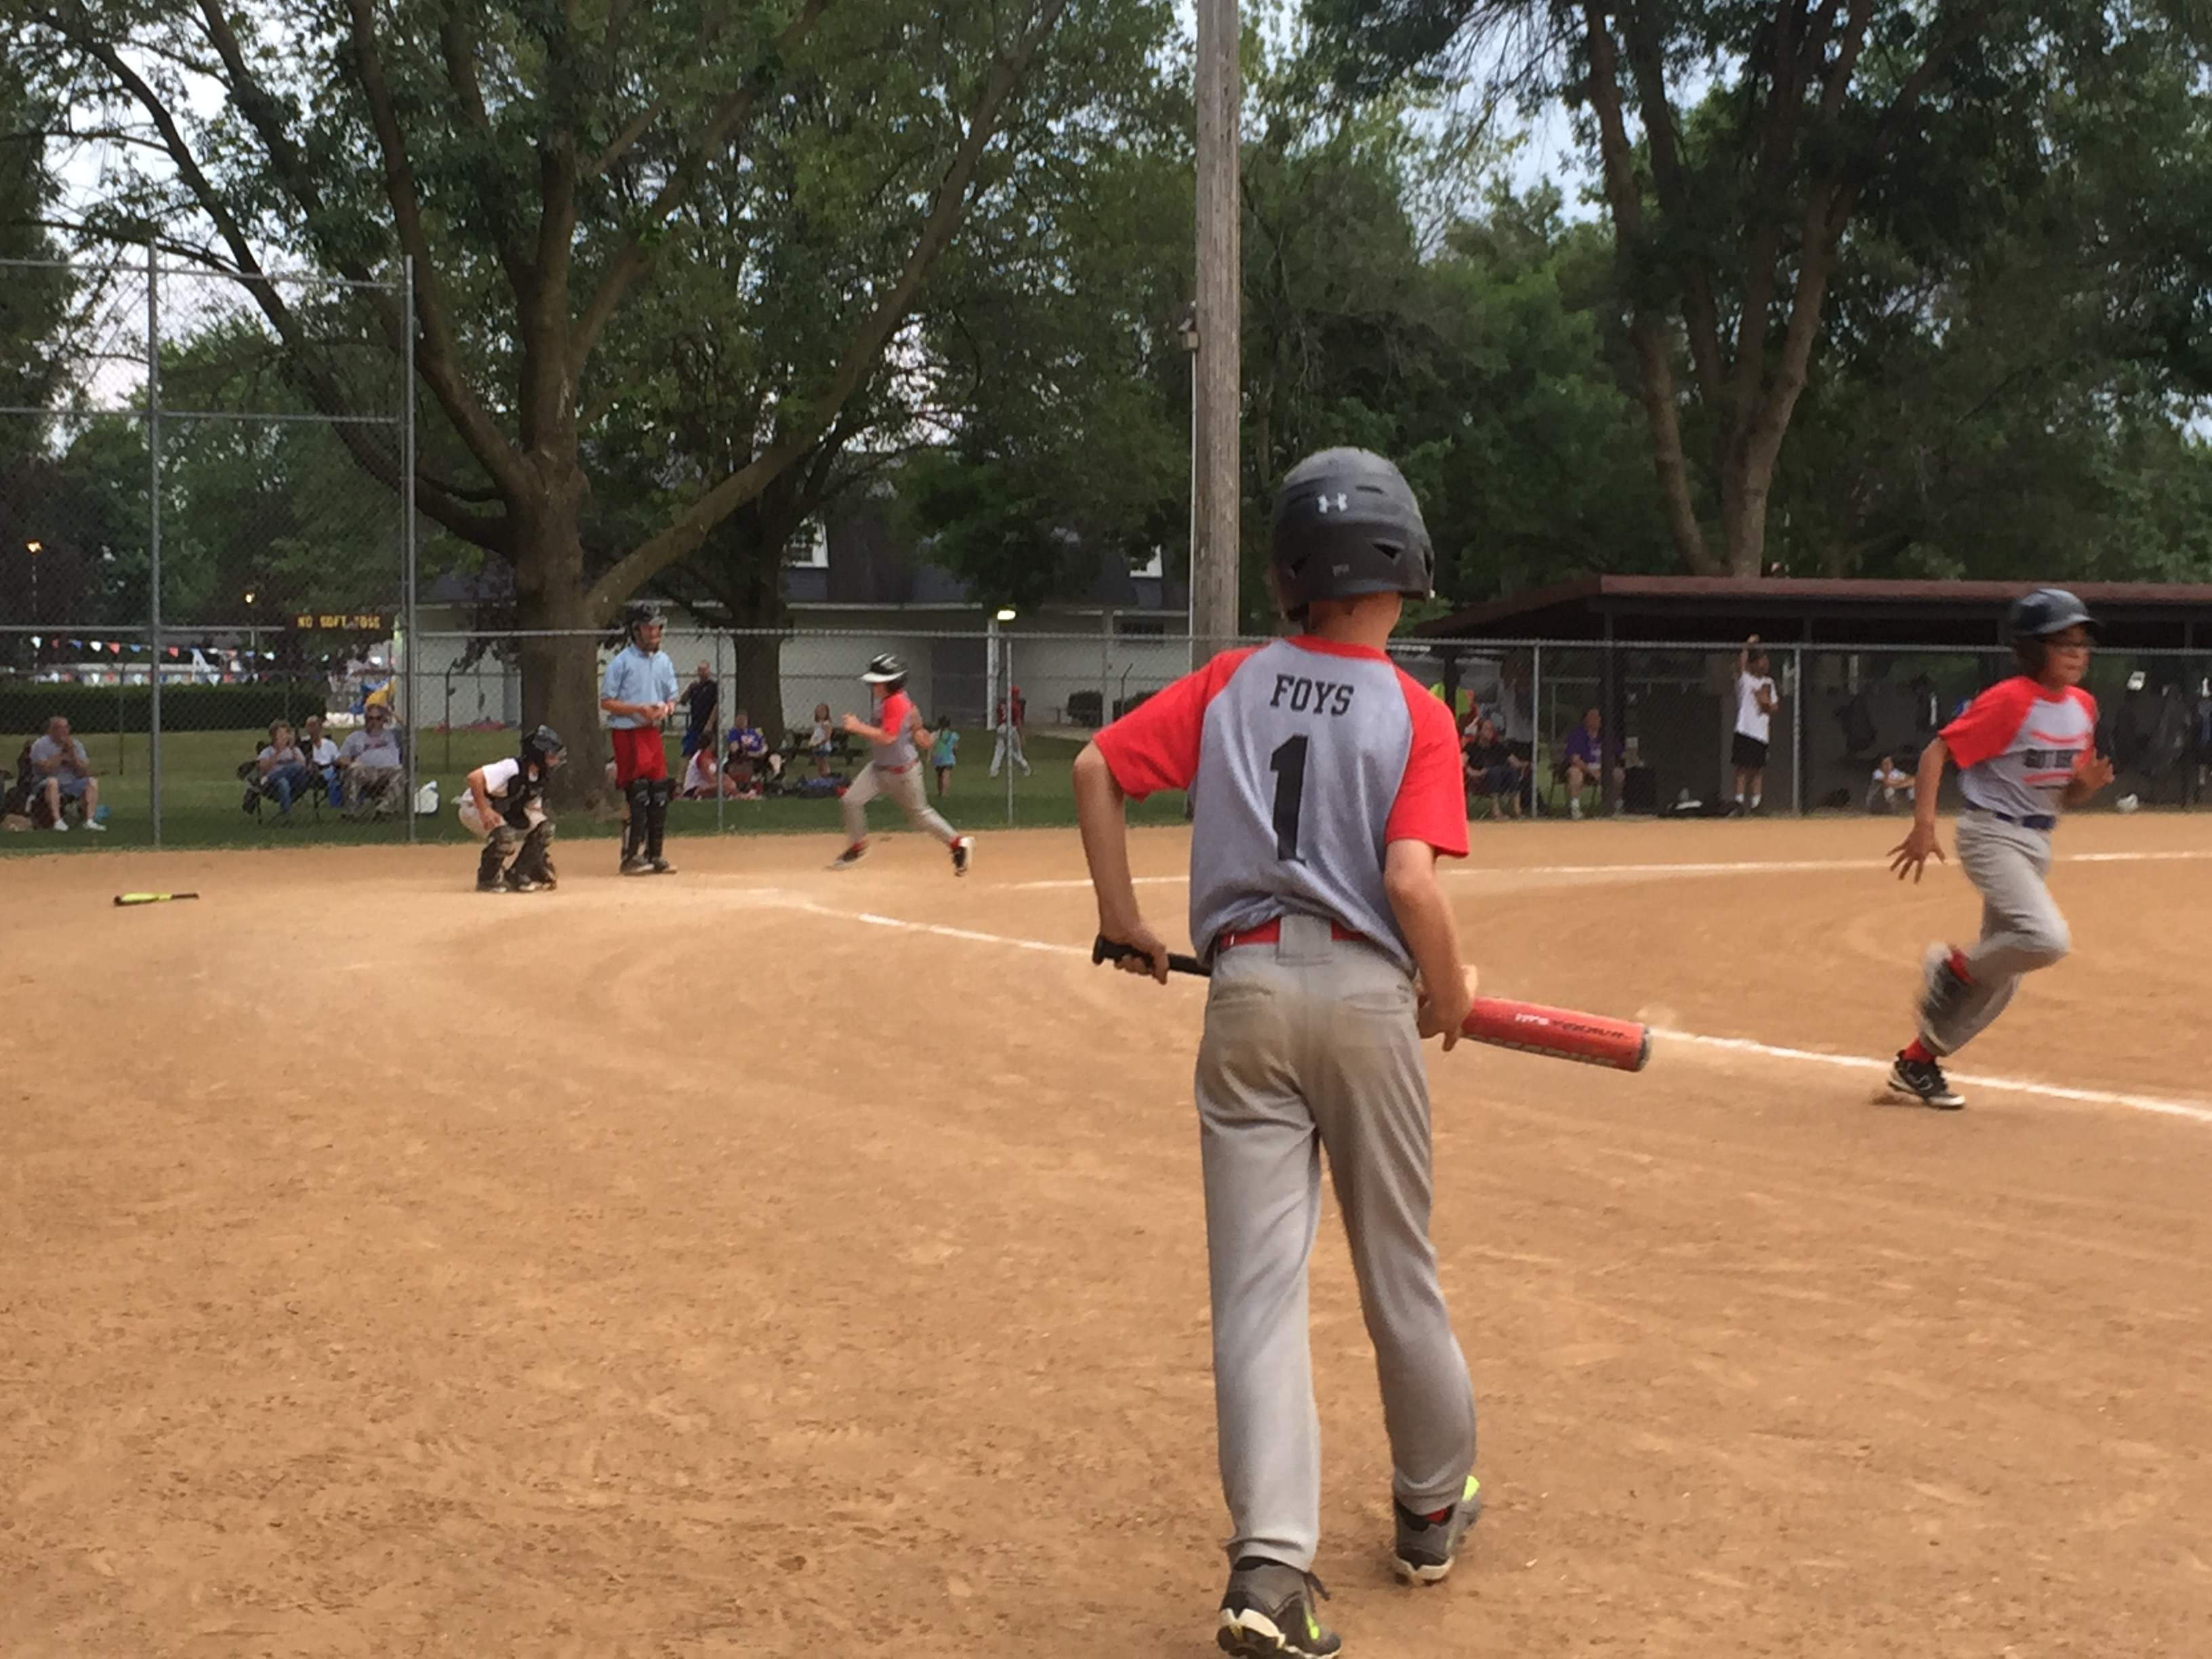 Got Dents Baseball Team 12u Springfield Il, sponsored by. http://217dent.com, your Springfield Mobile Dent Removal. June 20, 2016 Game Vs. Noonans